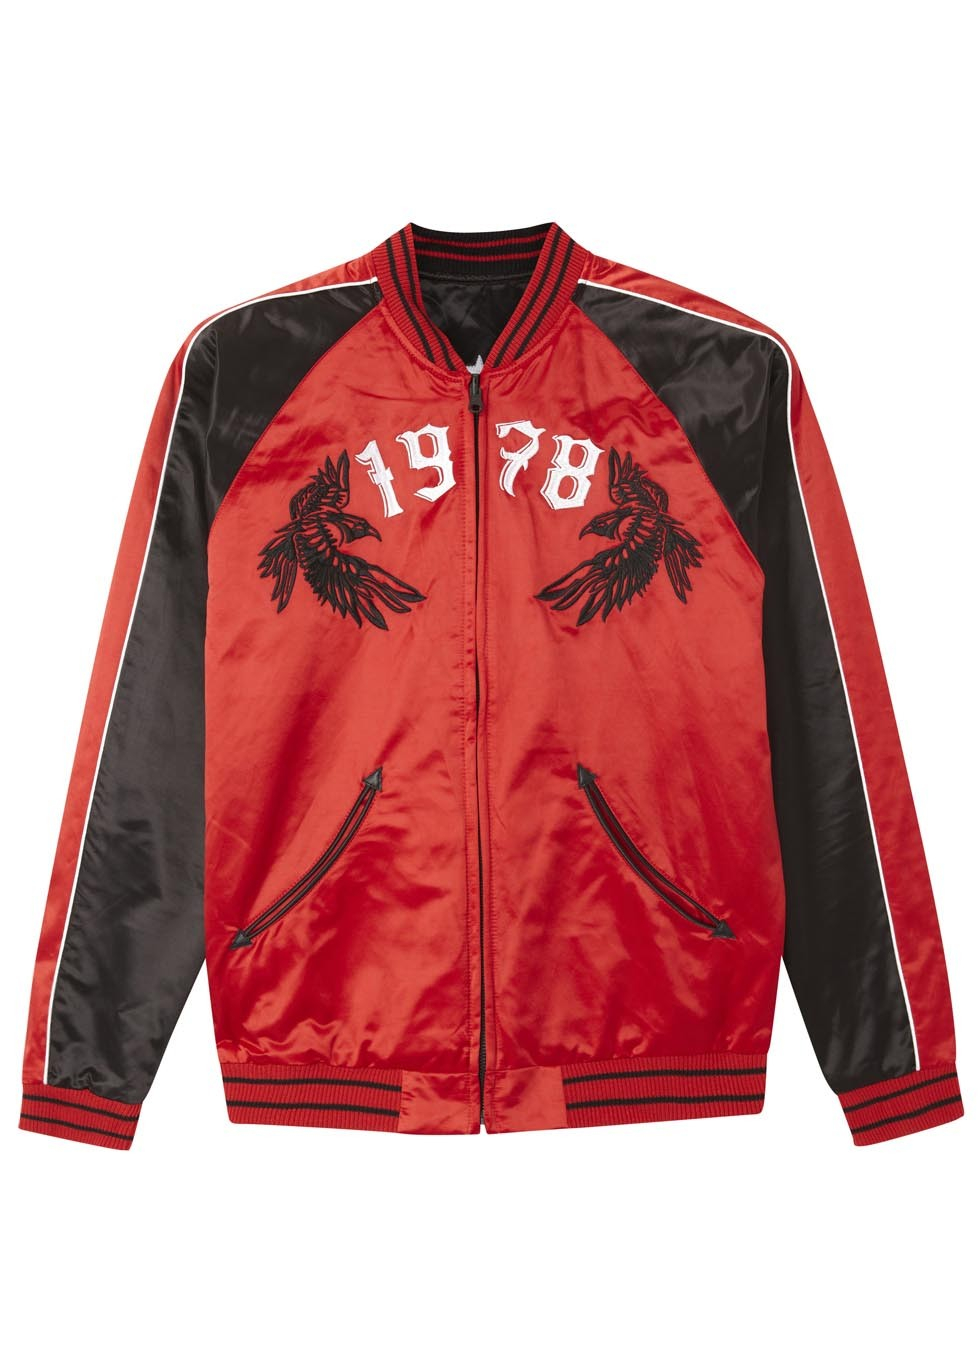 Diesel Red And Black Satin Bomber Jacket In Red For Men Lyst